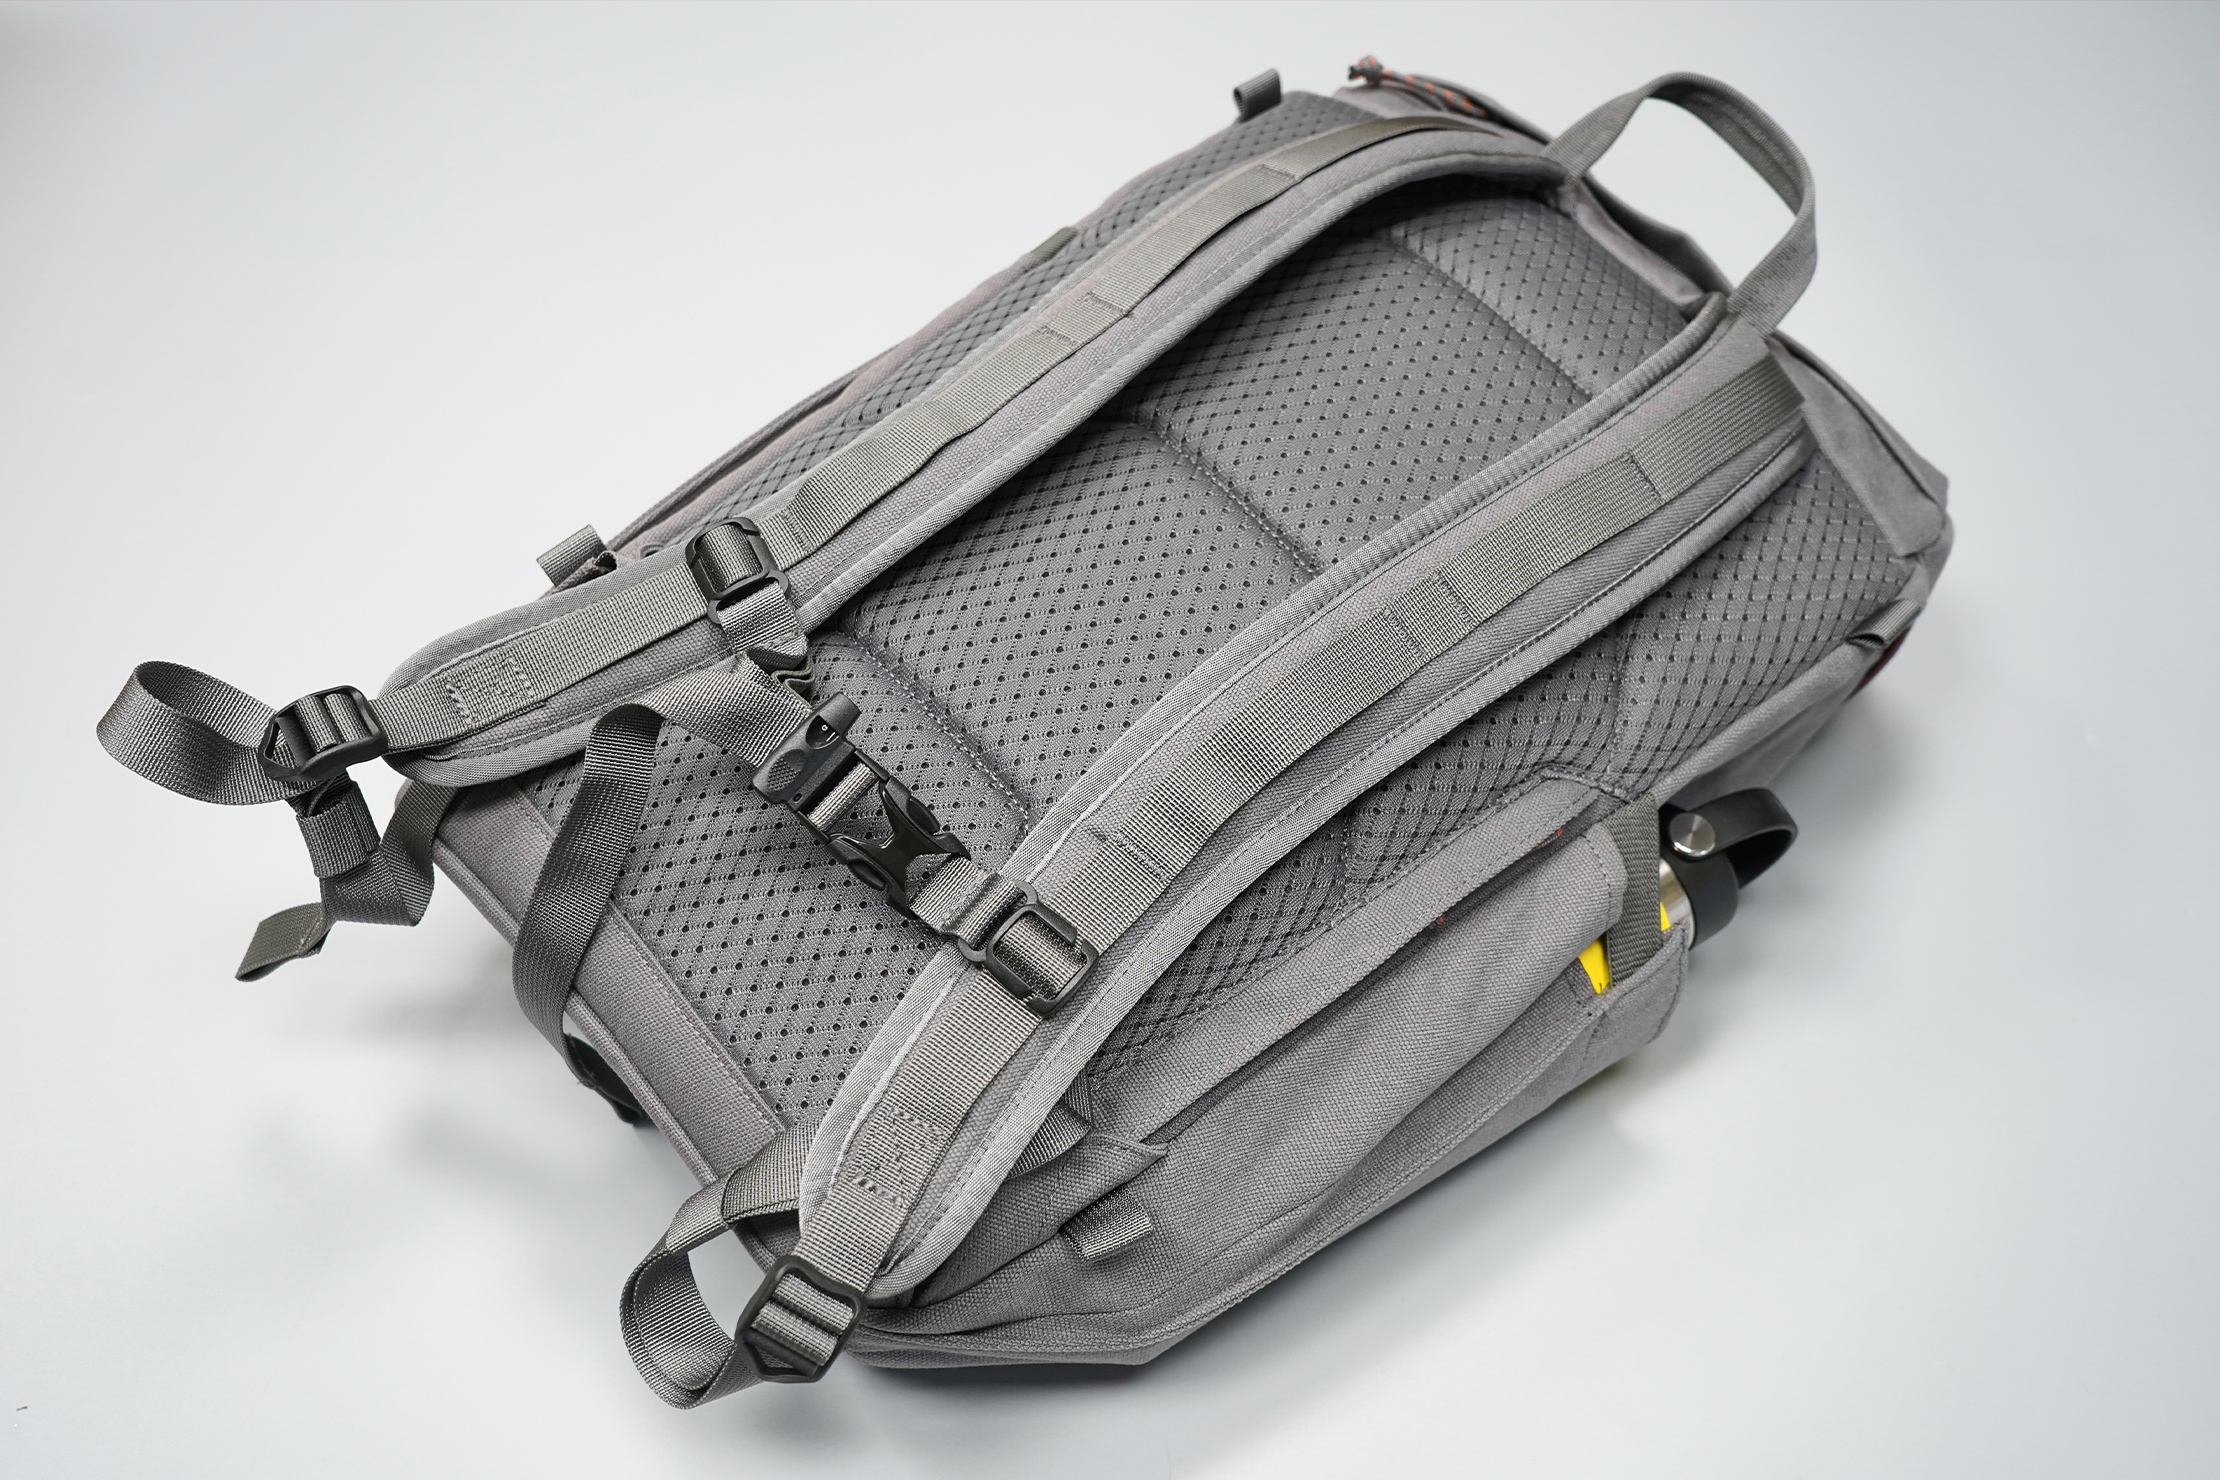 Salkan Backpacker | Daypack's back panel and harness system